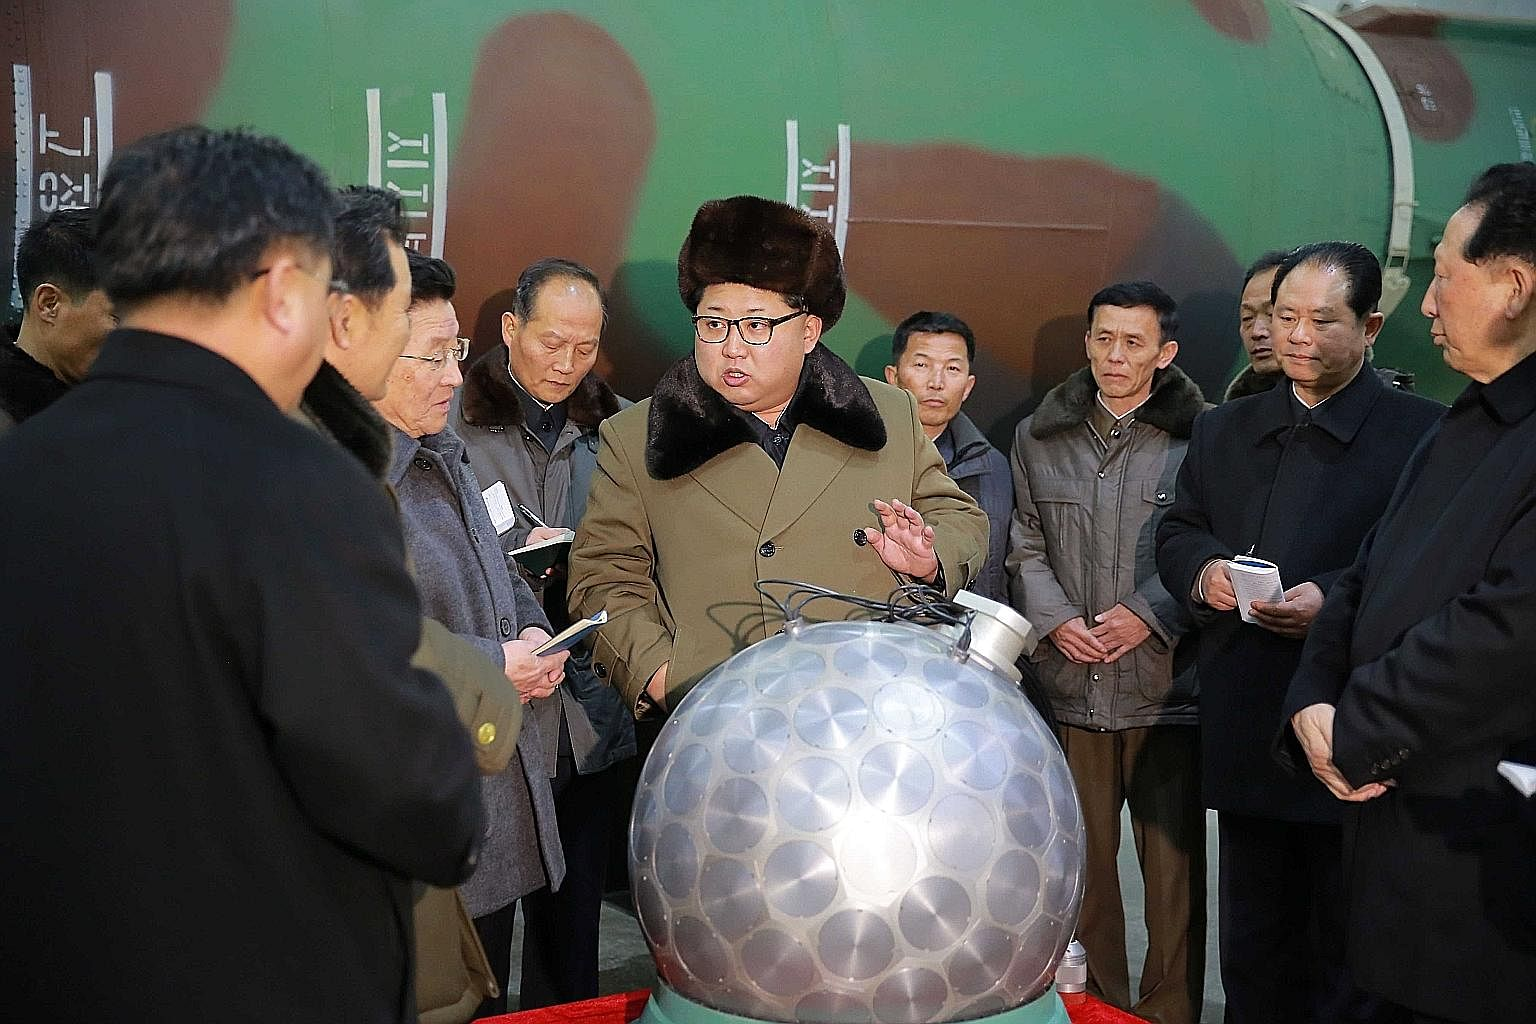 An undated photo released by the Korean Central News Agency (KCNA), the state news agency of North Korea, showing North Korean leader Kim Jong Un (centre) talking with scientists and technicians involved in the research of nuclear weapons, at